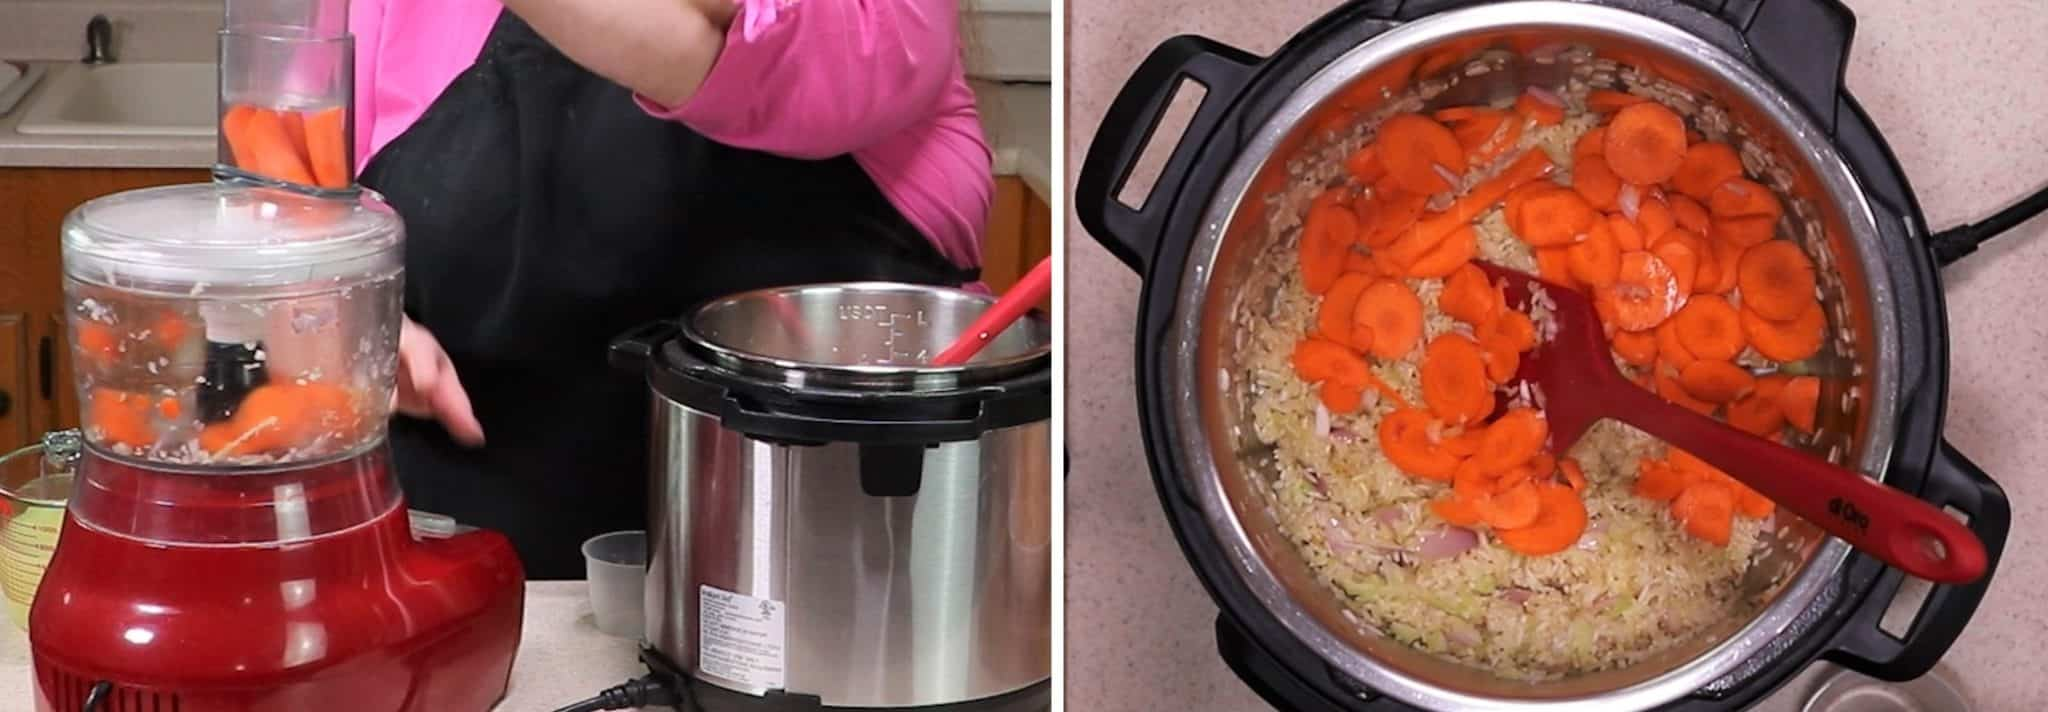 Food Processor Quickly Slices Raw Carrots